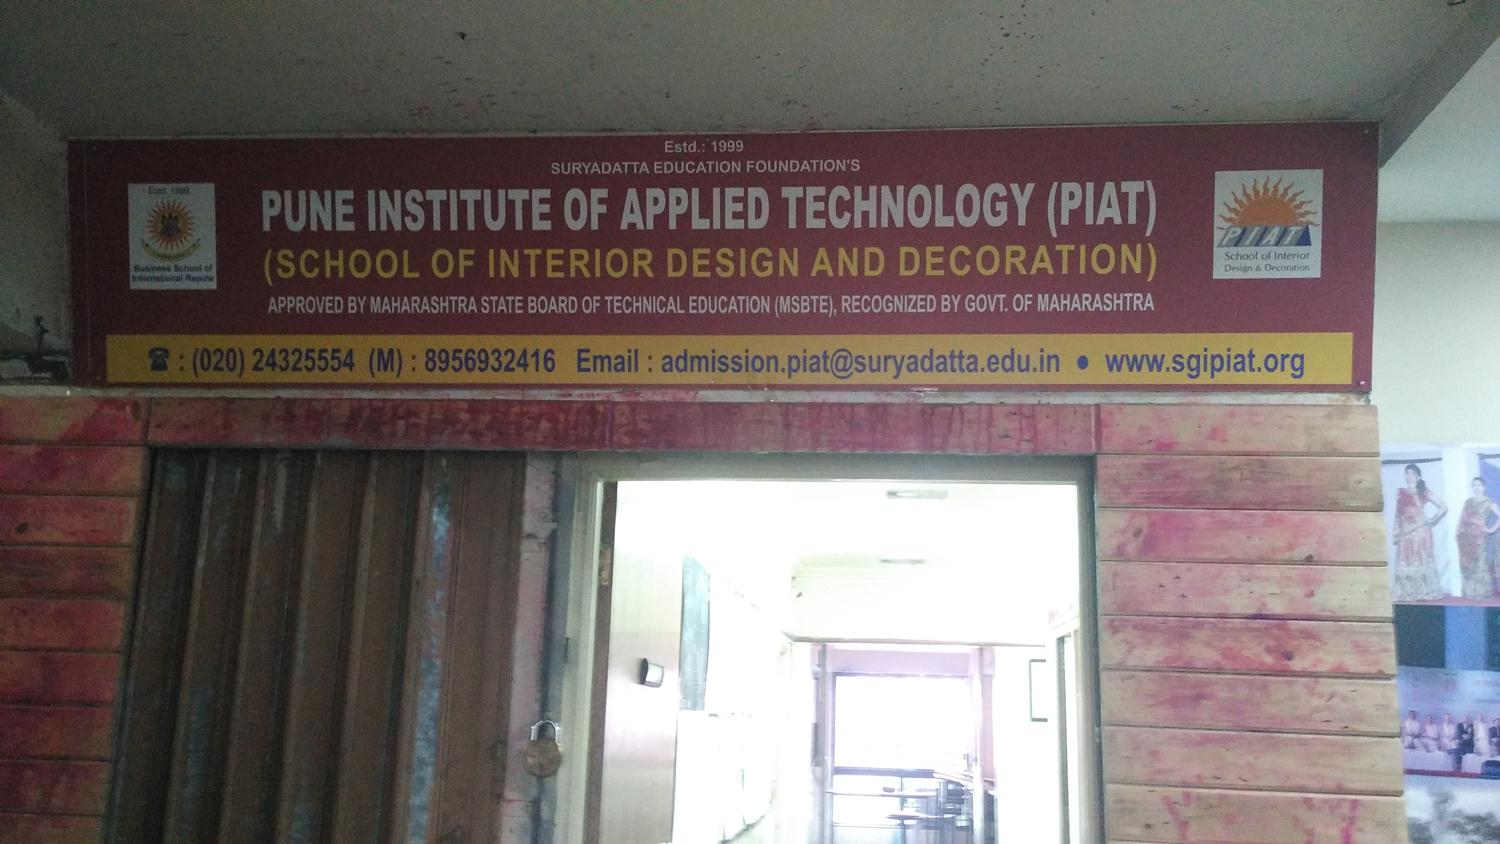 Pune Institute Of Applied Technology Tilak Road